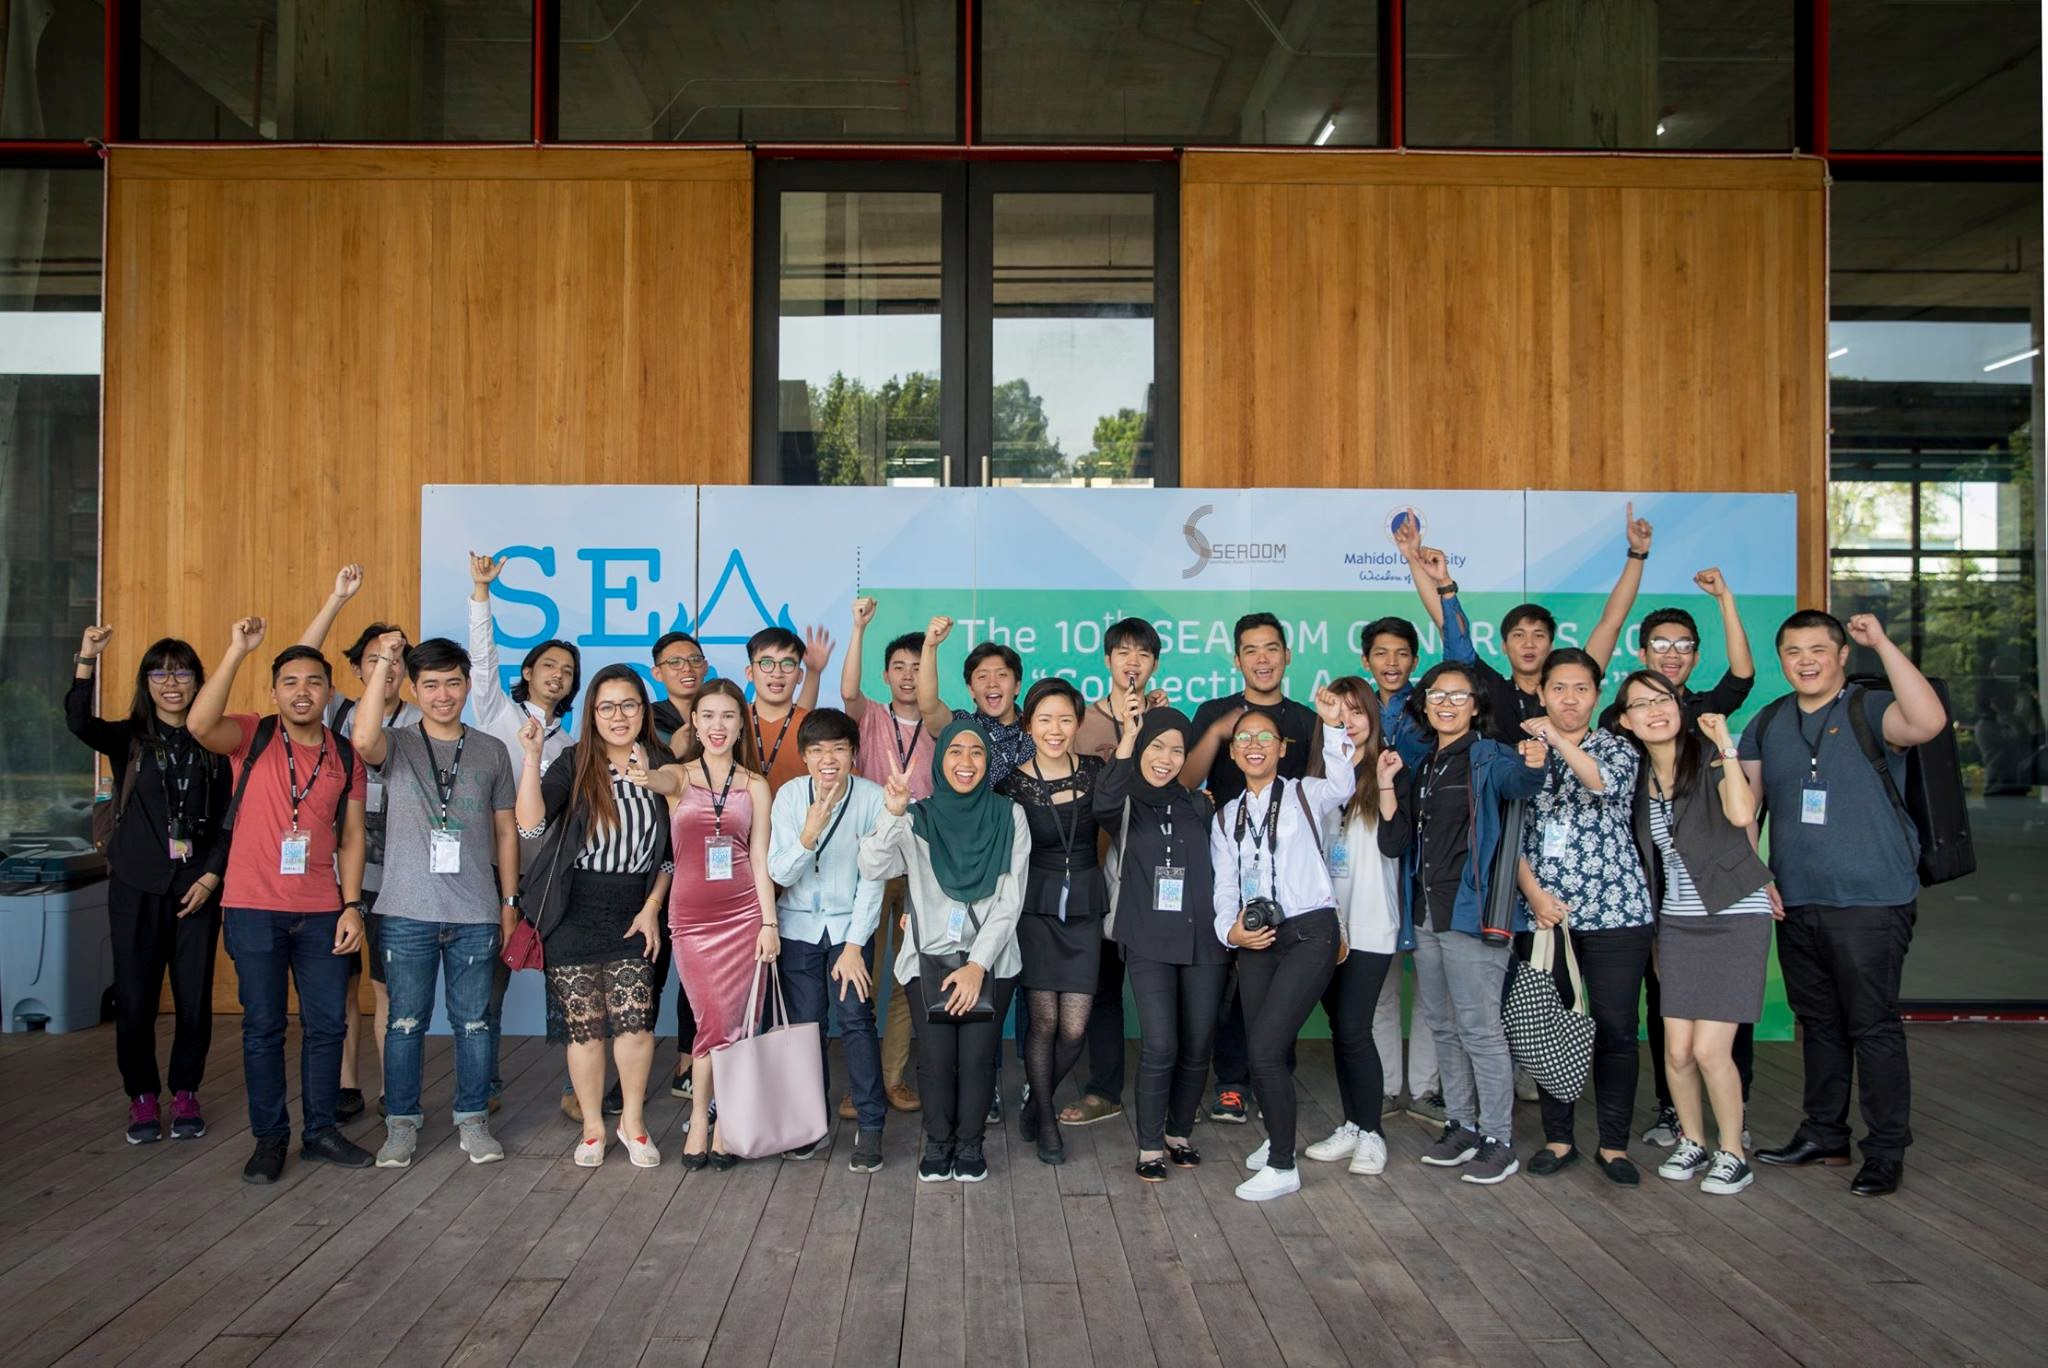 Above: YST students with delegates from the SEADOM conference